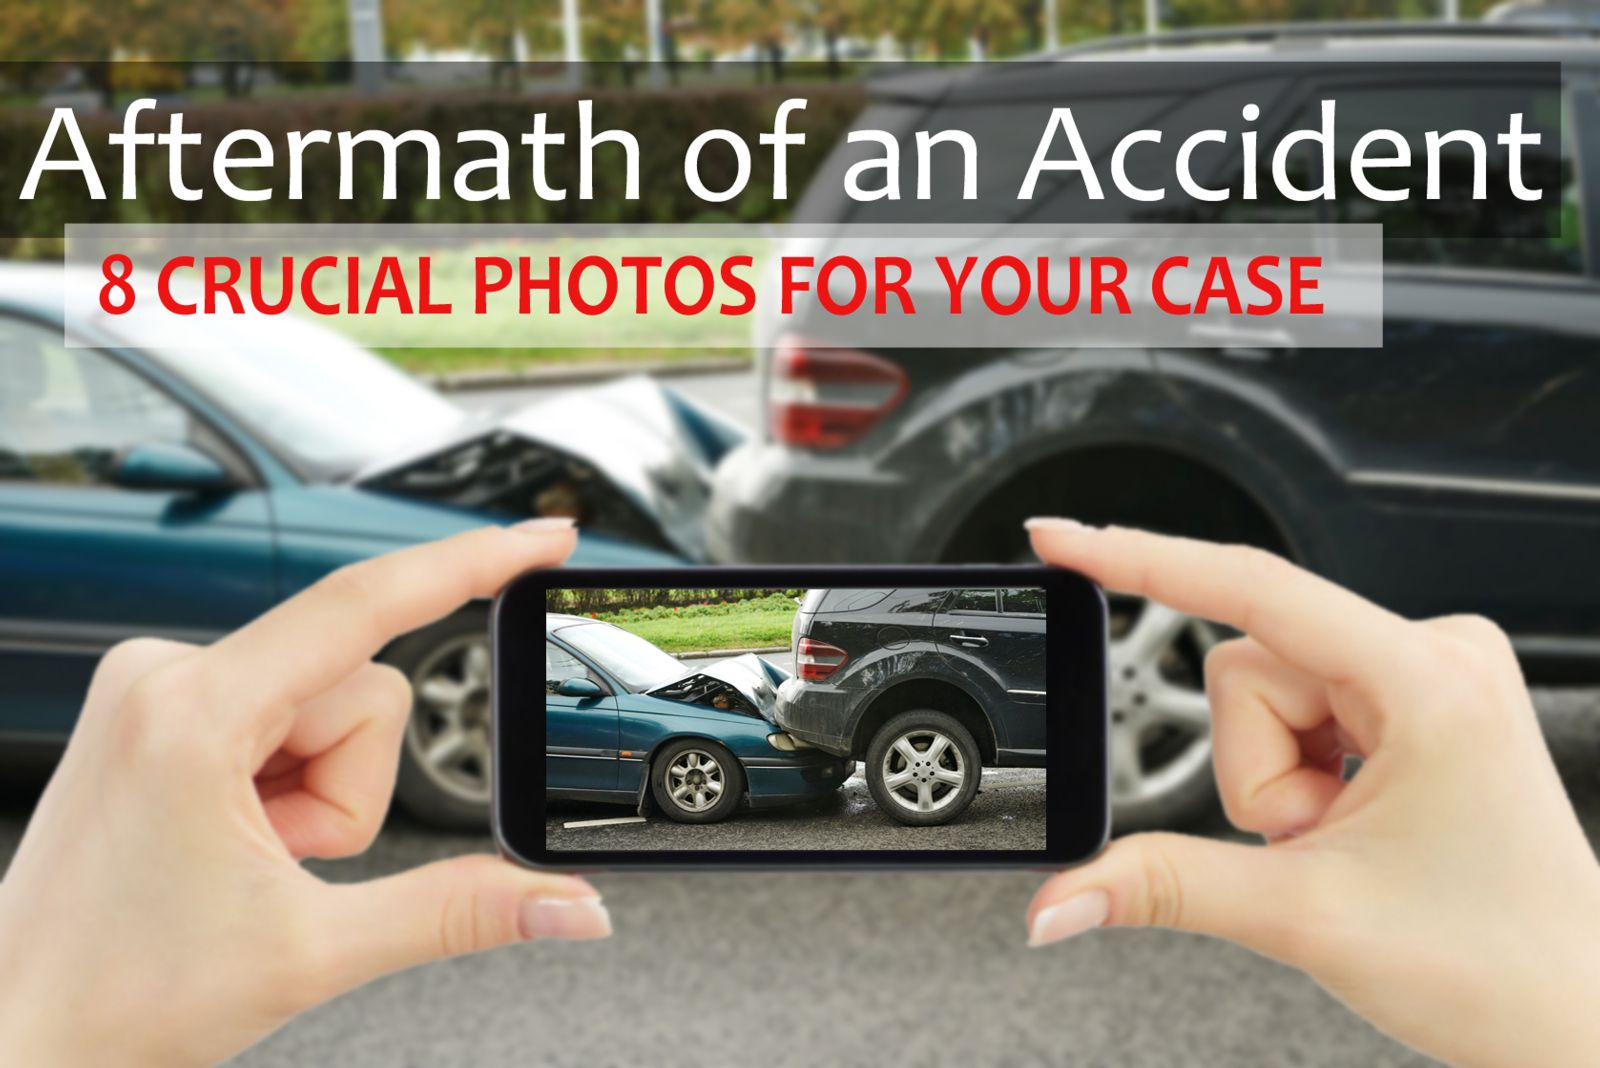 Photos after an accident